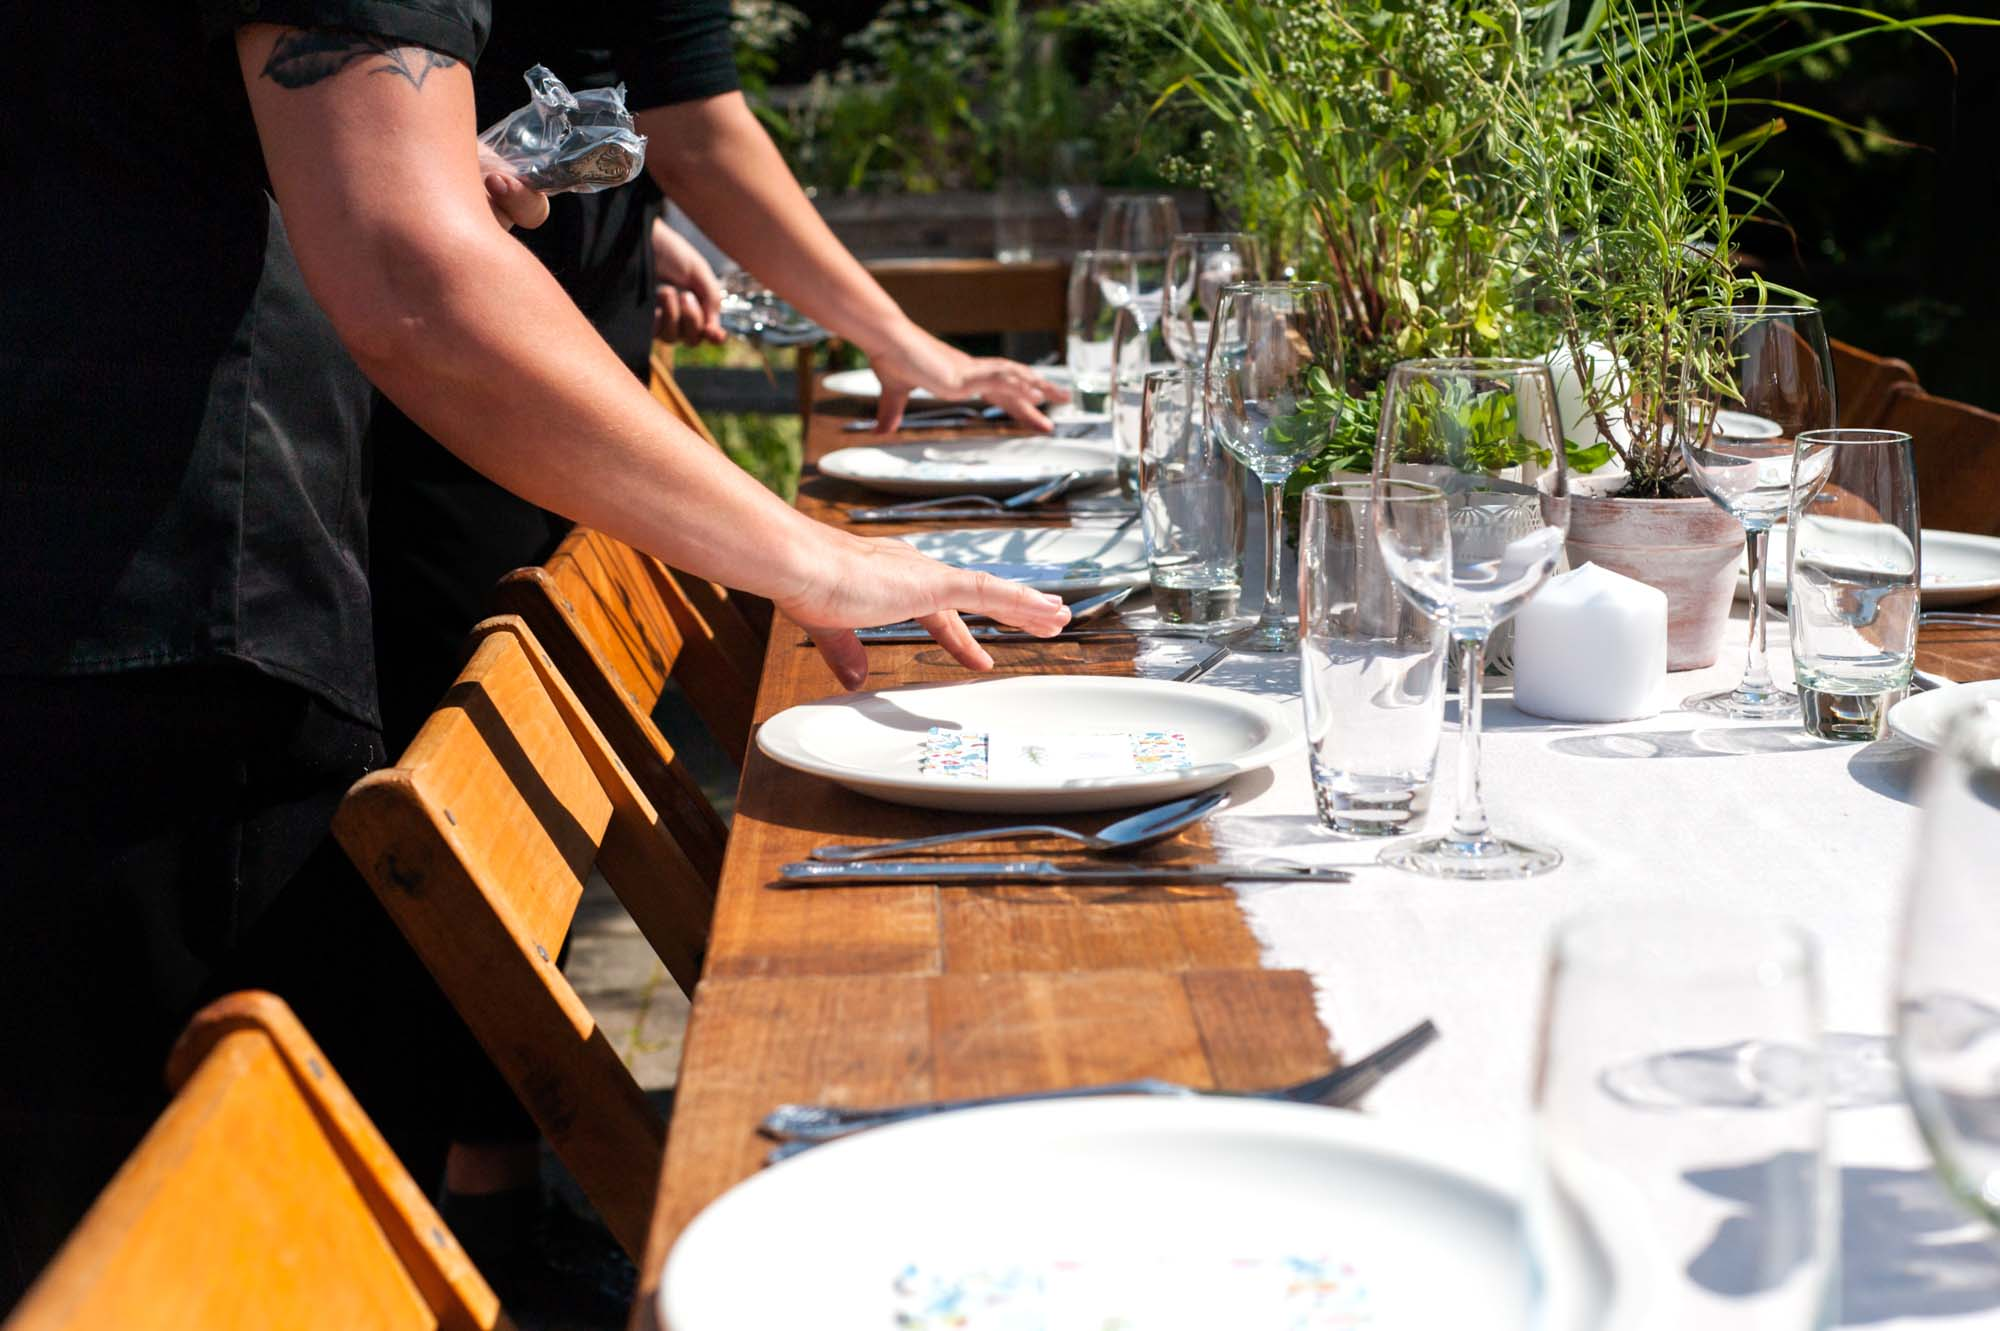 Laying wedding tables outdoors